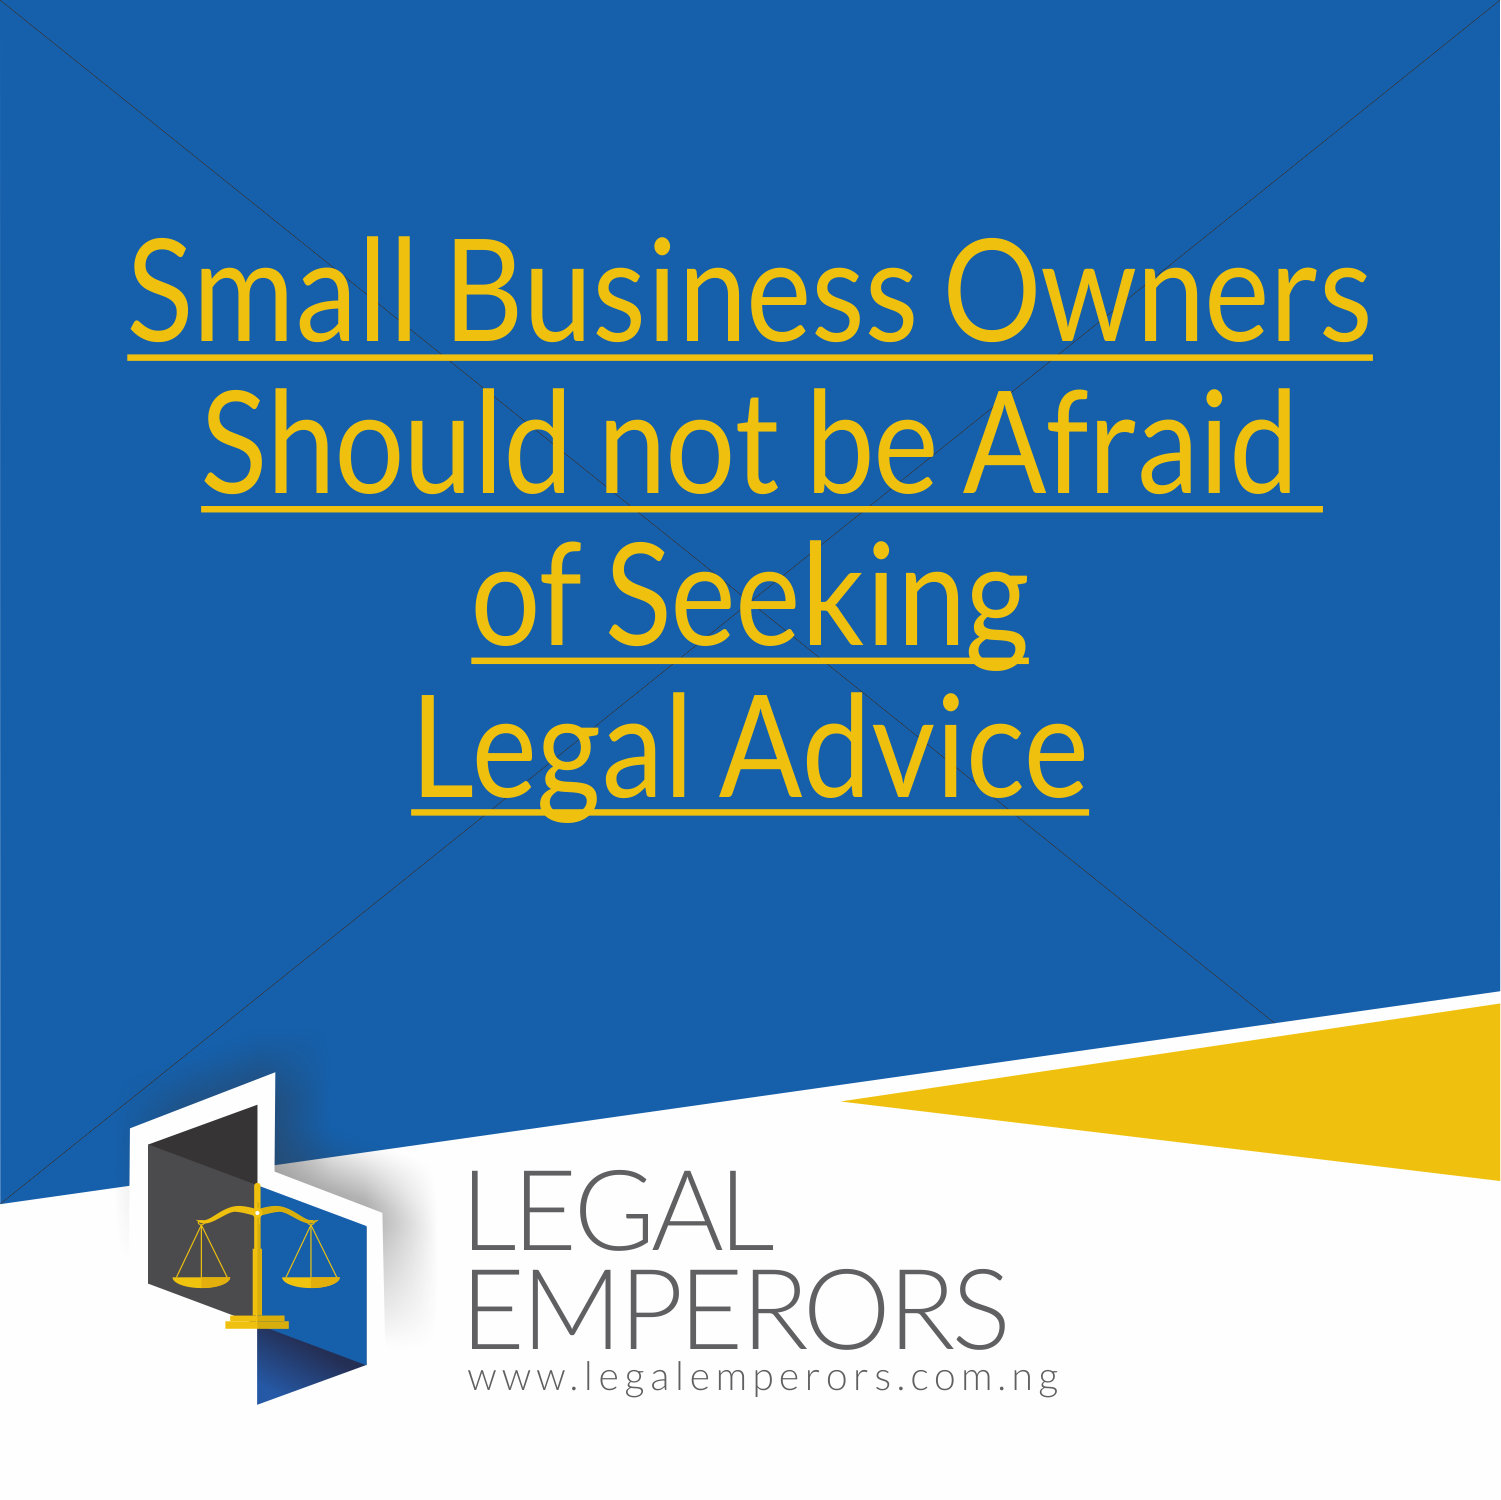 Small Business Owner and Legal Advice